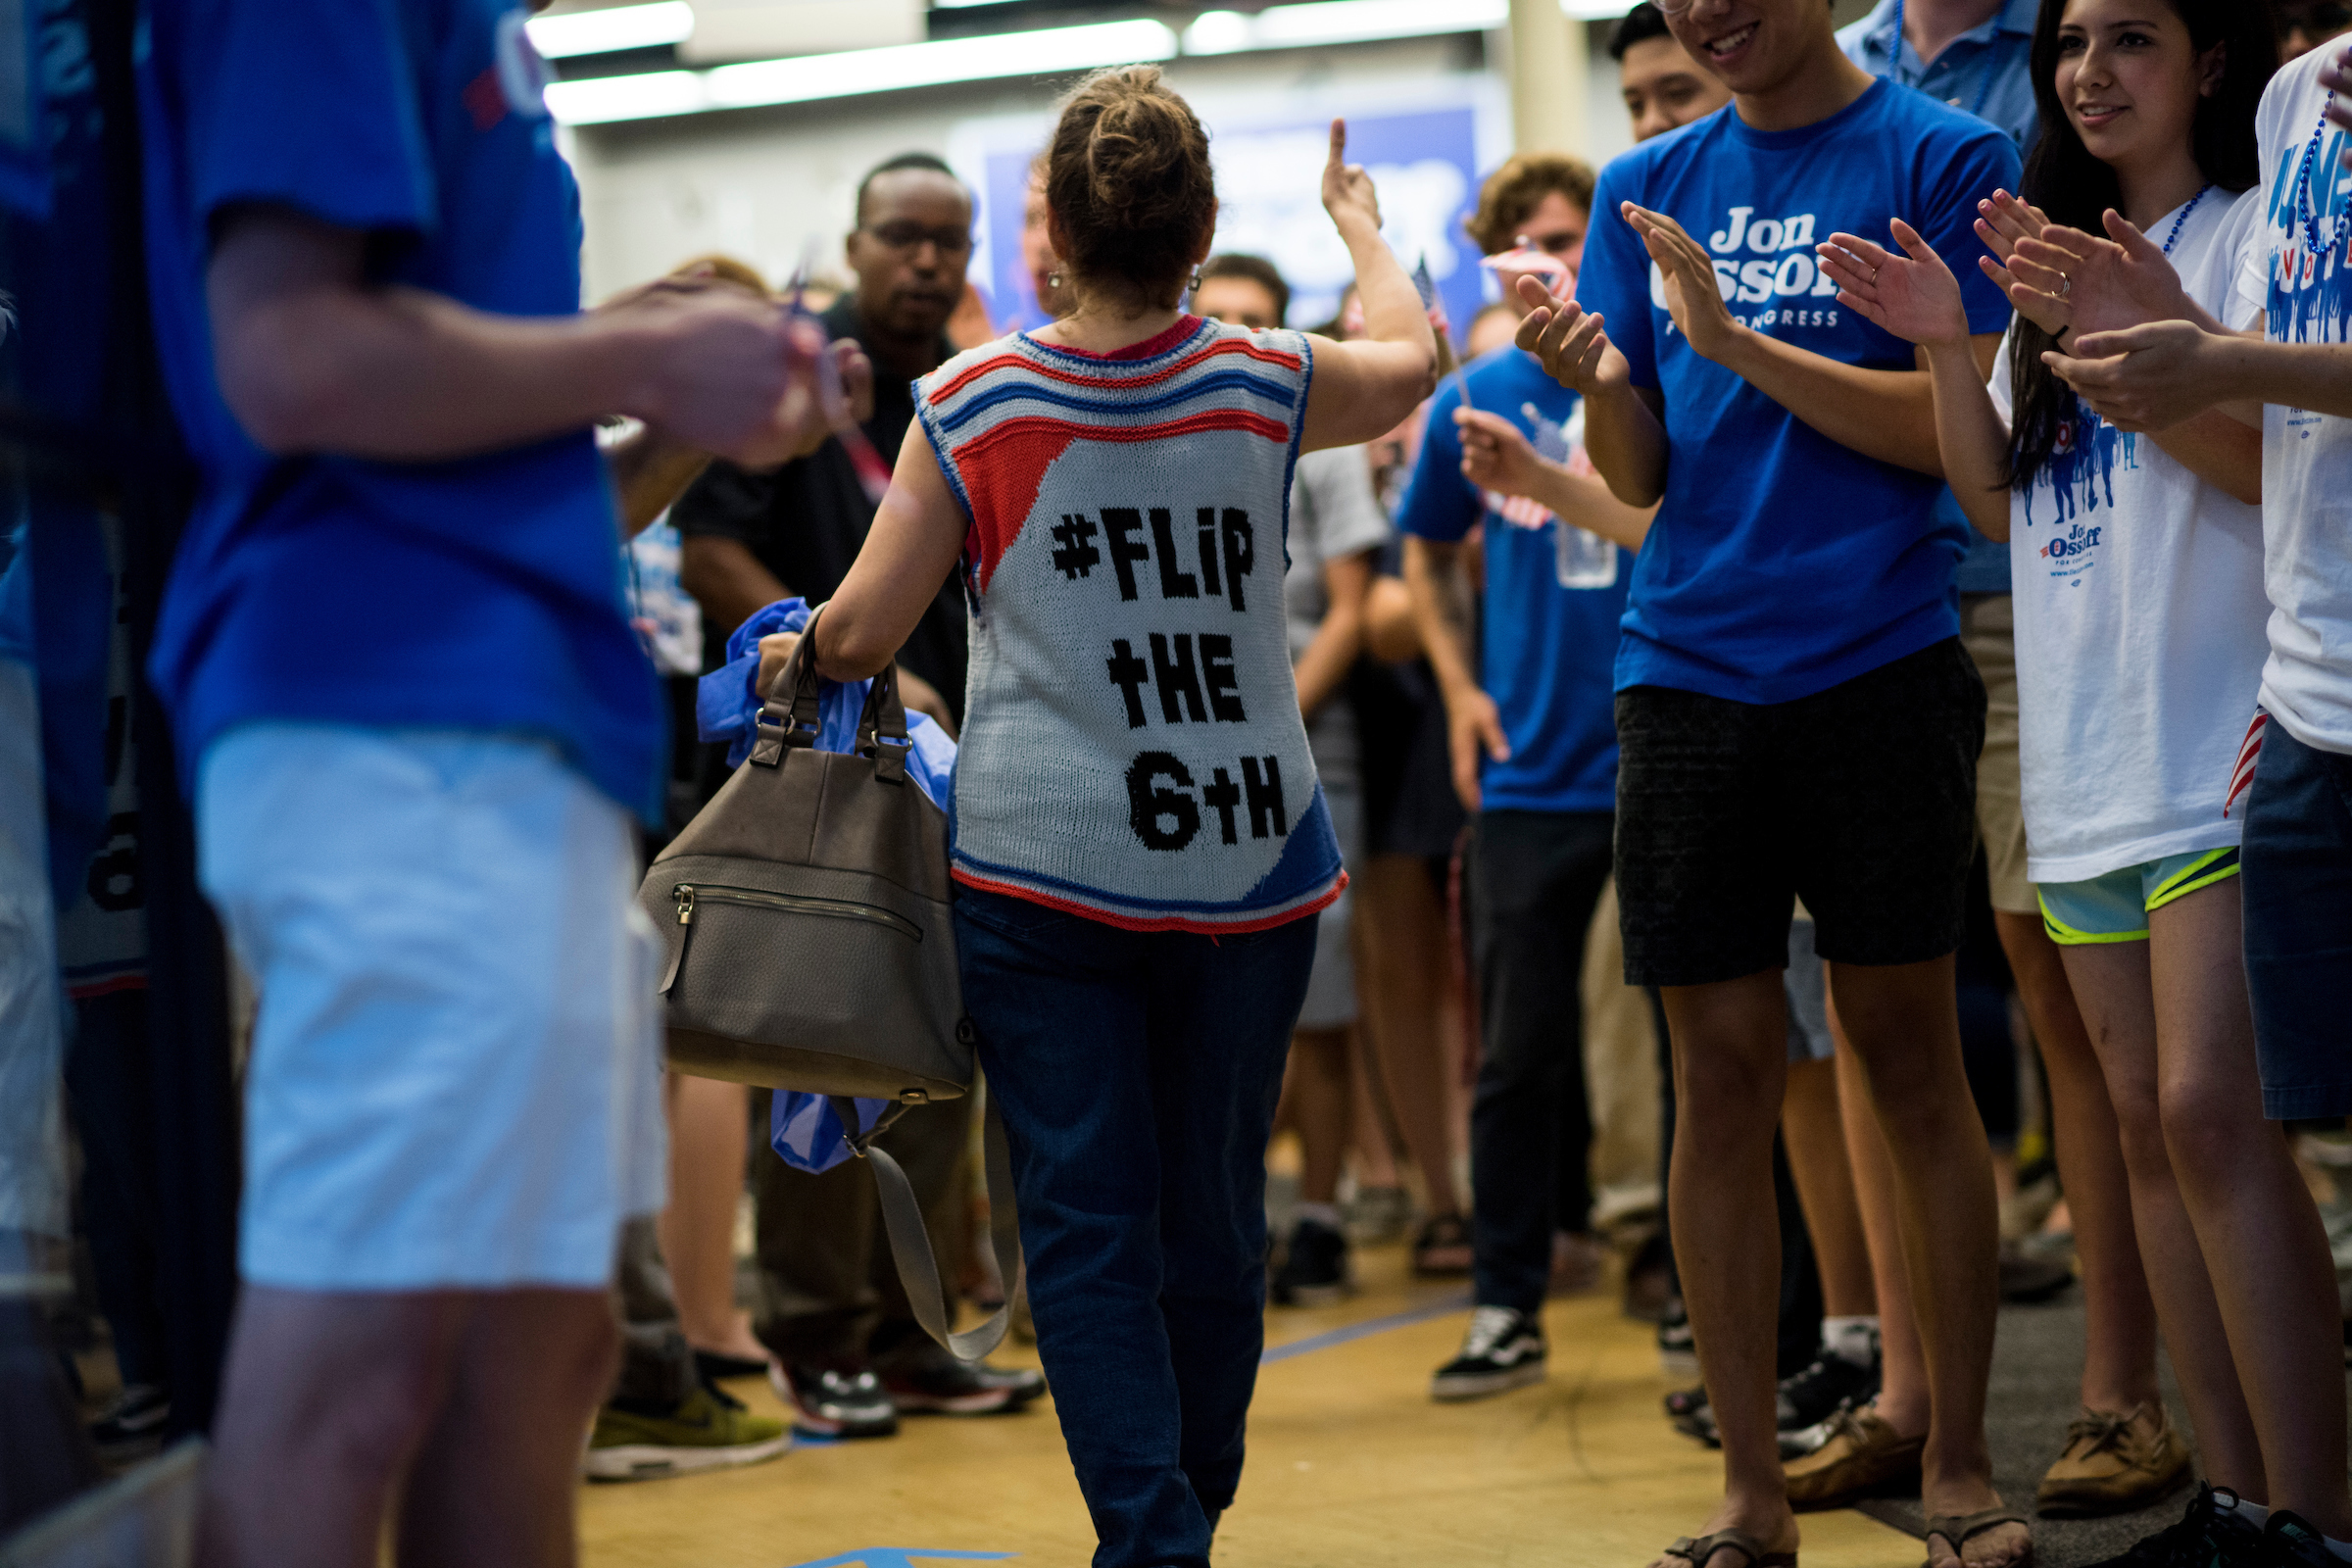 UNITED STATES - JUNE 19: Campaign workers cheer as fellow campaign workers arrive for the final campaign rally for Democratic candidate for Georgia's 6th Congressional district Jon Ossoff at his campaign office in Roswell, Ga., on the final day of campaigning on Monday, June 19, 2017. Ossoff is facing off against Republican Karen Handel in the special election to fill the seat vacated by current HHS Secretary Tom Price will be held on Tuesday. (Photo By Bill Clark/CQ Roll Call)